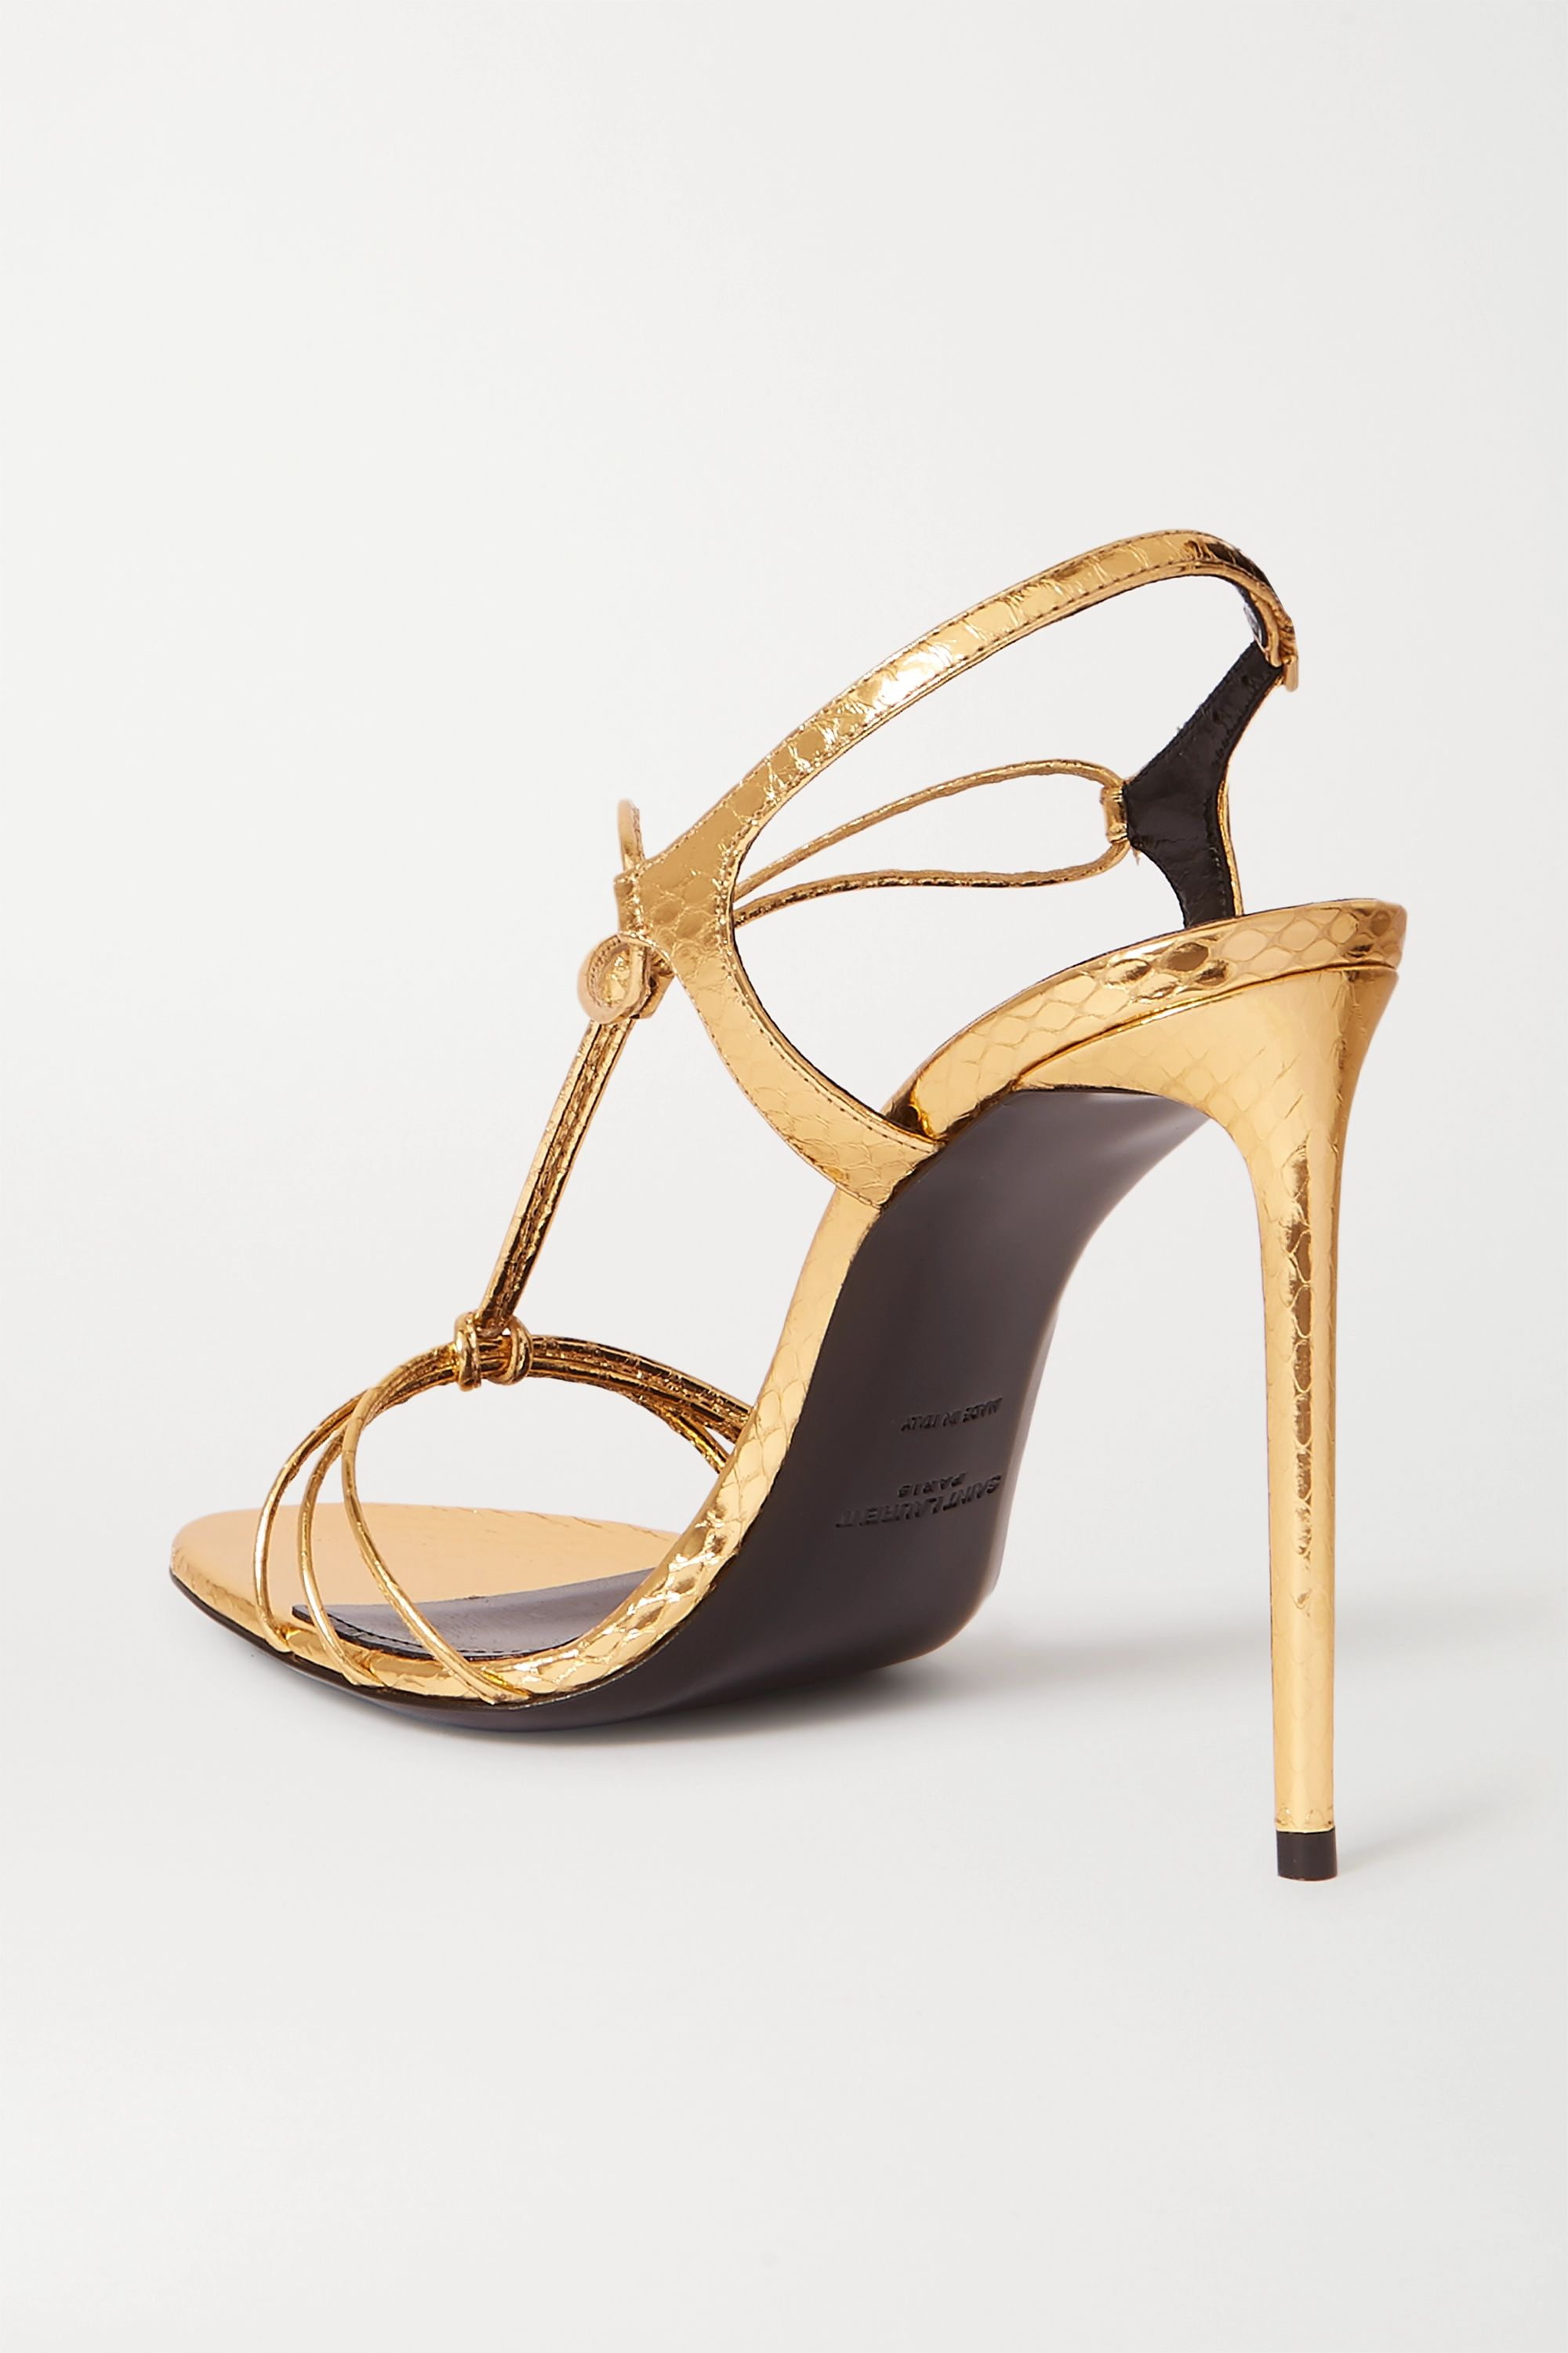 SAINT LAURENT Robin metallic watersnake sandals